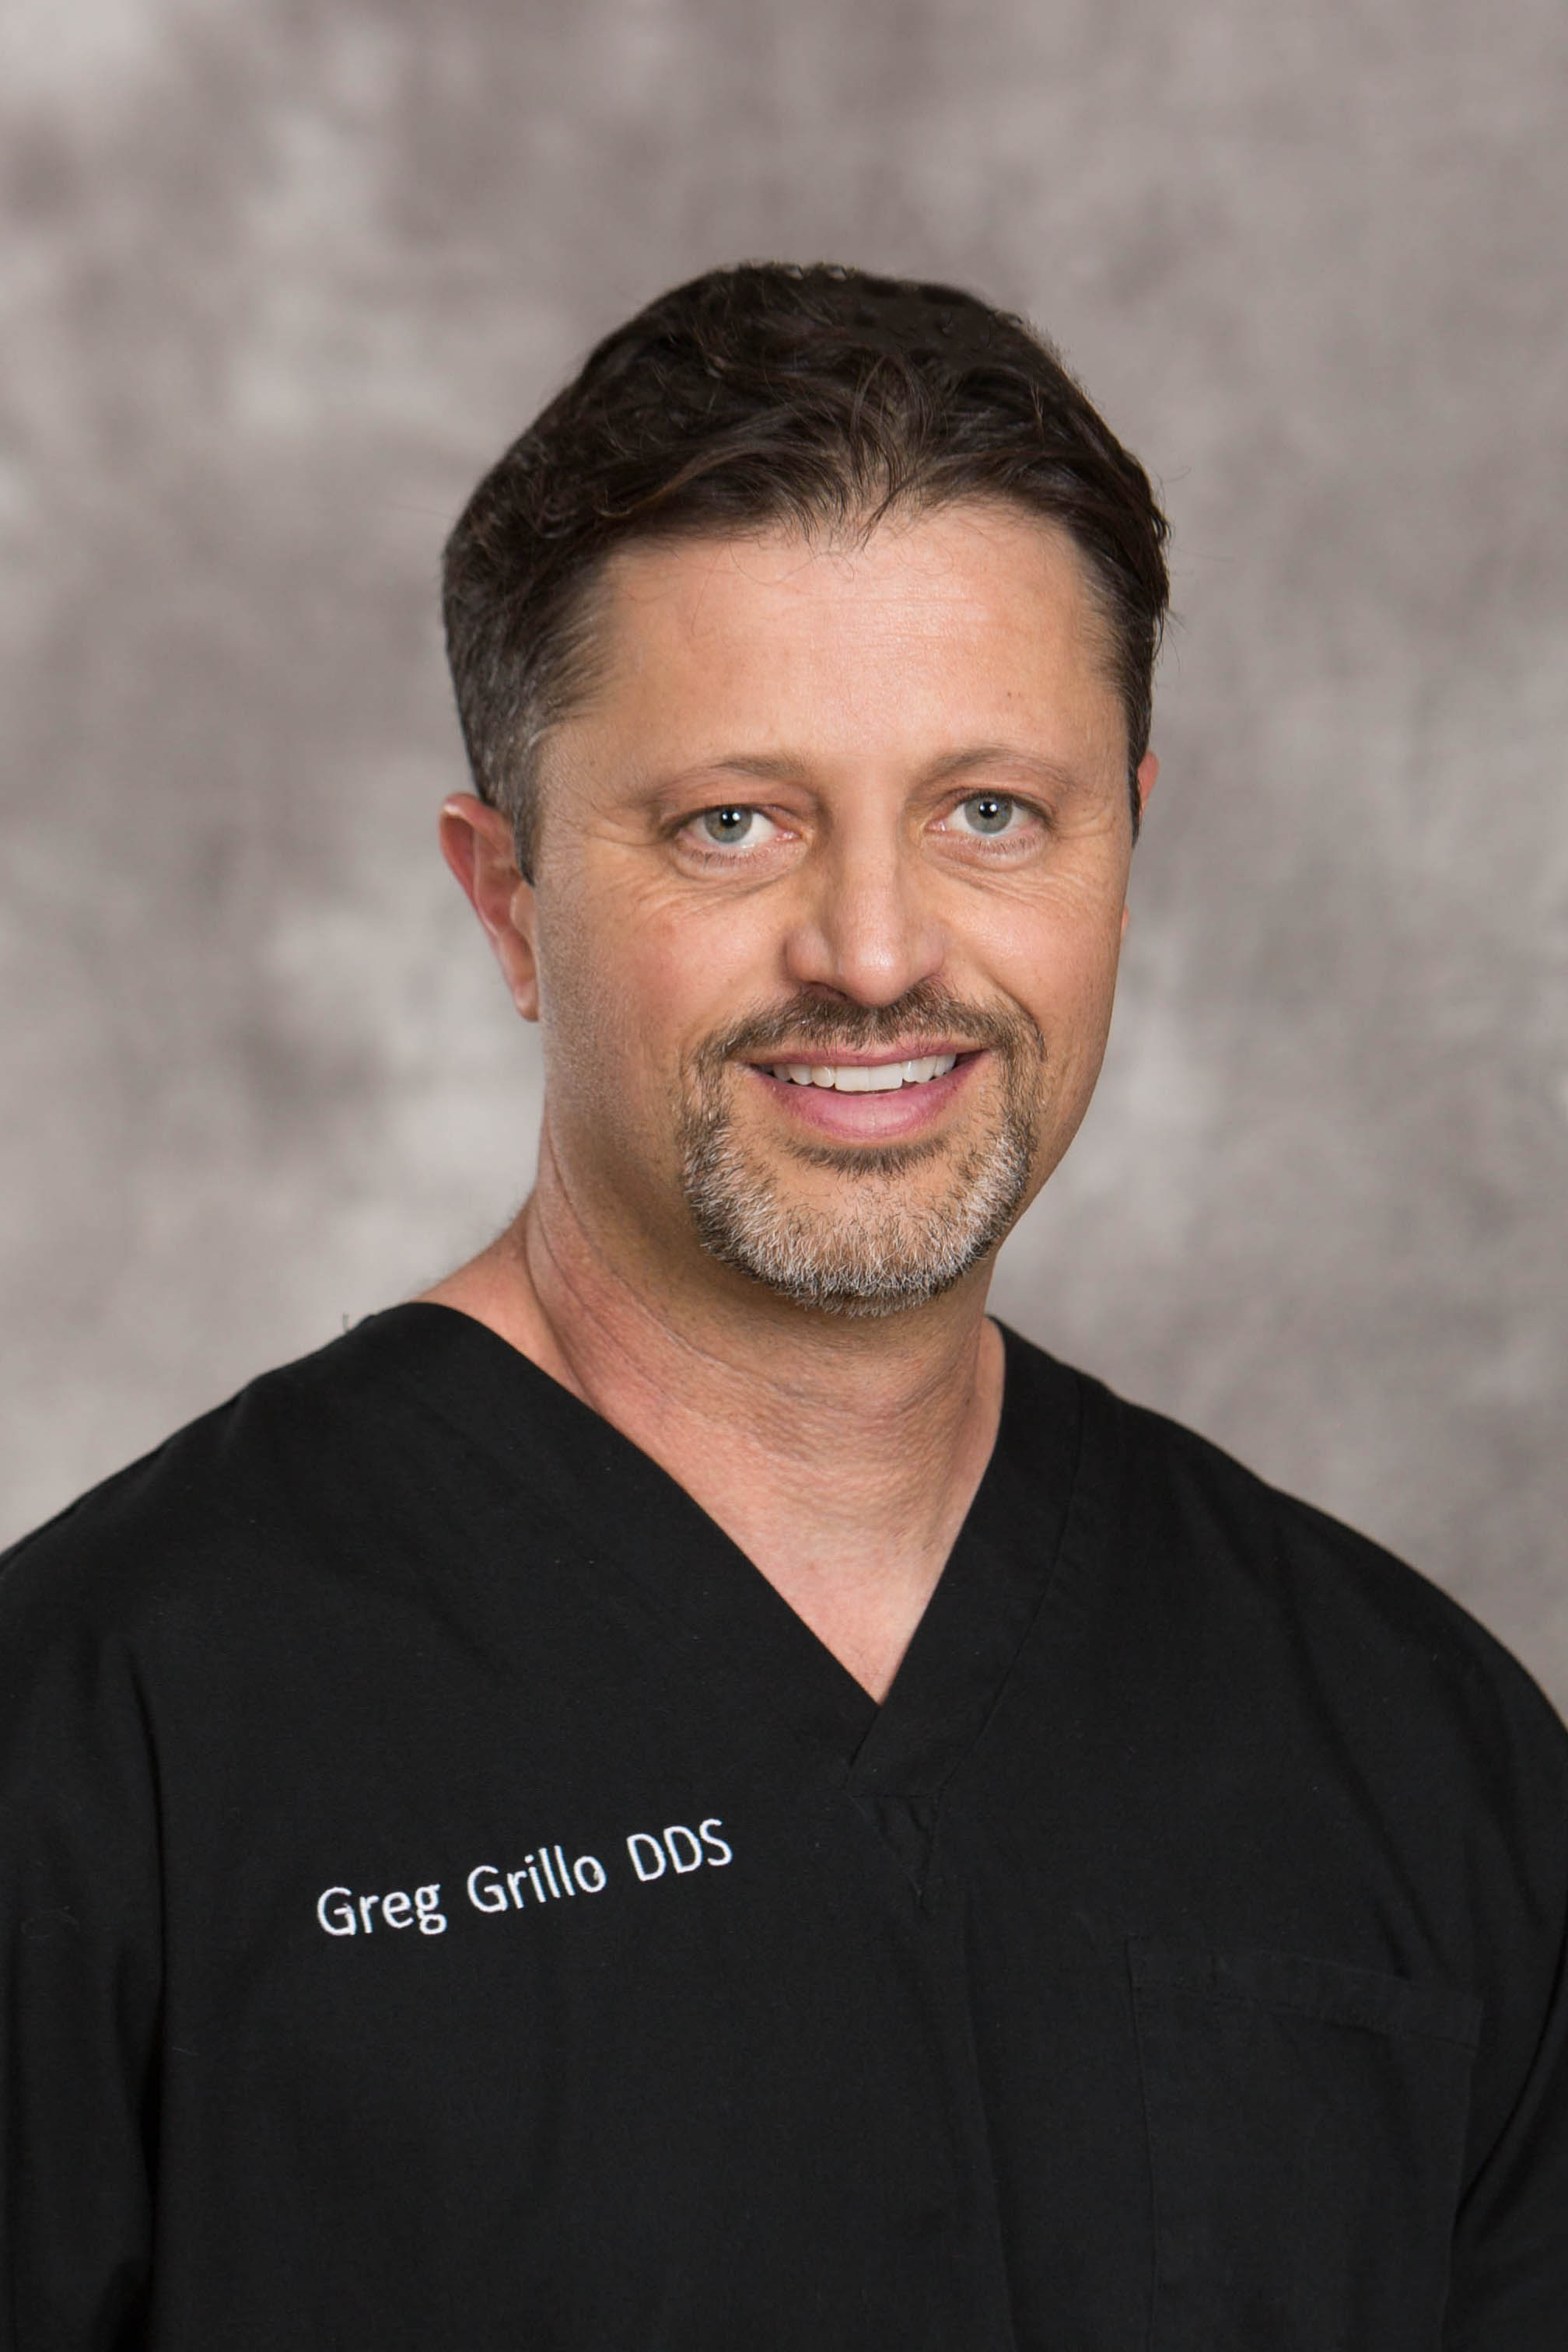 DR. GREG GRILLO .